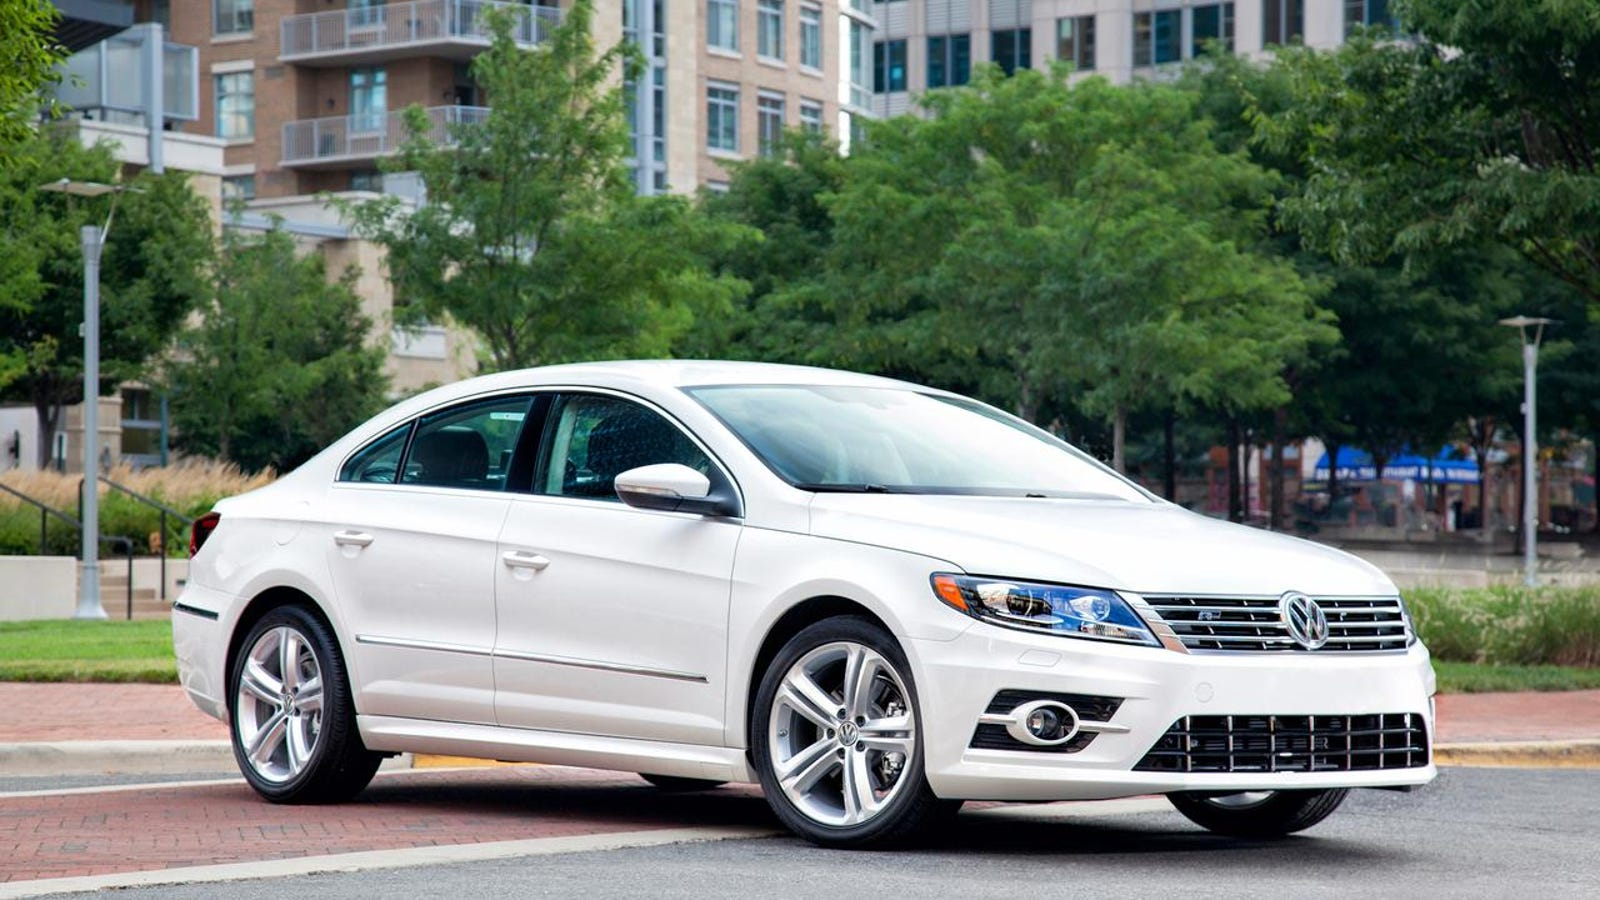 Thoughts on the VW CC?